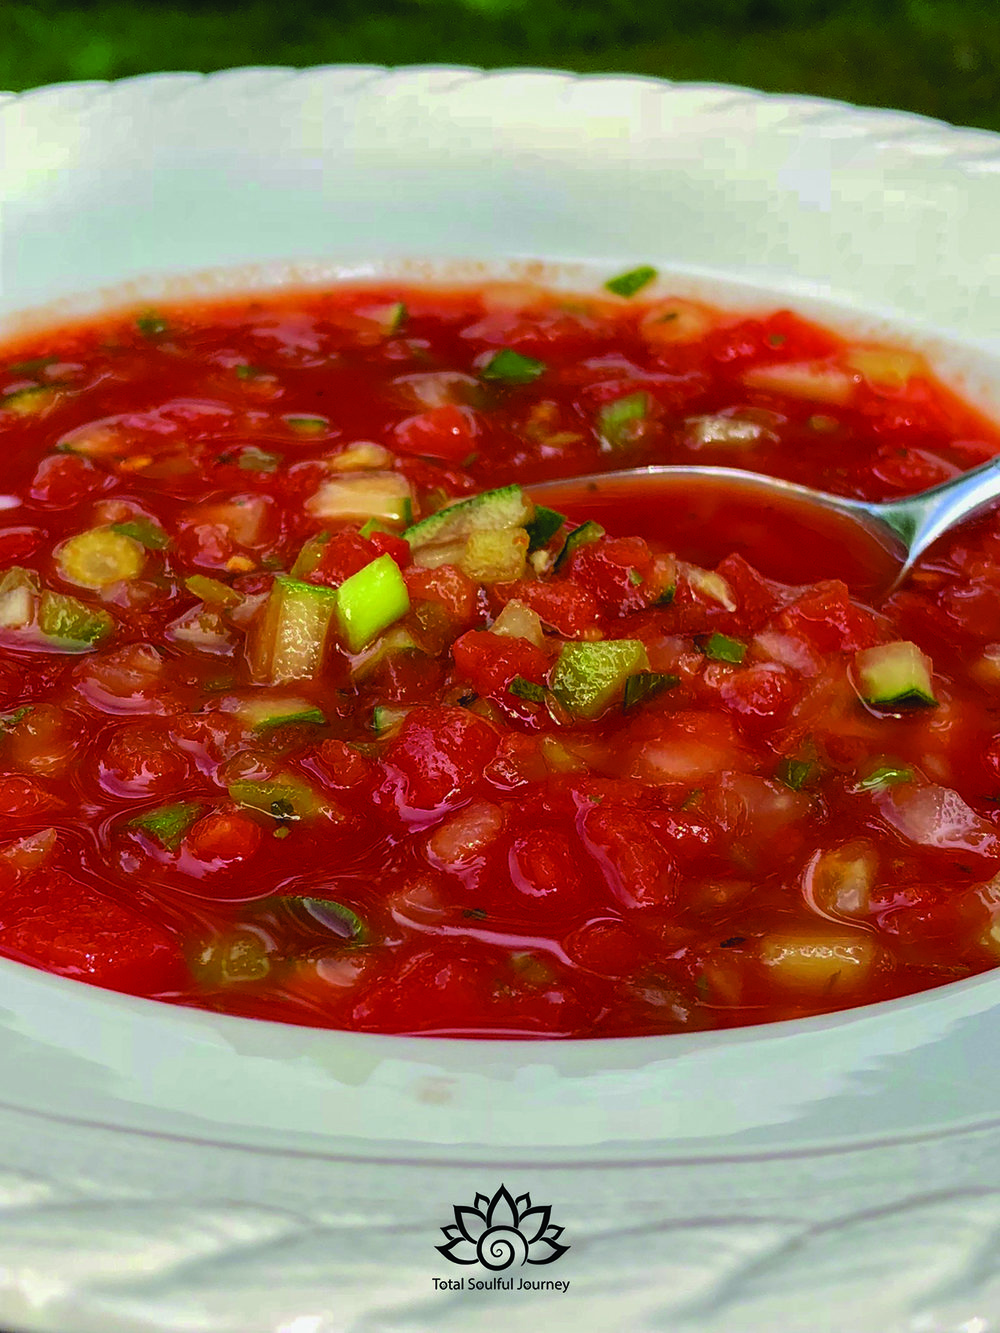 The Best Gazpacho - 4 cans of tomato juice, chilled1 sm sweet onion (finely minced)2 cans rotel, drained & chopped 1 green pepper, finely minced1 cucumber, finely minced2 green onions, chopped1/2 clove garlic, minced1 heaping tsp. of local honey2 T Red wine vinegarJuice of 1/2 lemonJuice of 1 lime1 tsp dried tarragon1 tsp dried basilDash of cuminDash of tabascoSalt & pepper to tasteCombine all ingredients & chill. *note: the green chilis in the rotel give this quite a spicy bite so feel free to use mild if you prefer non spicy.Submitted by Libby McAvoy